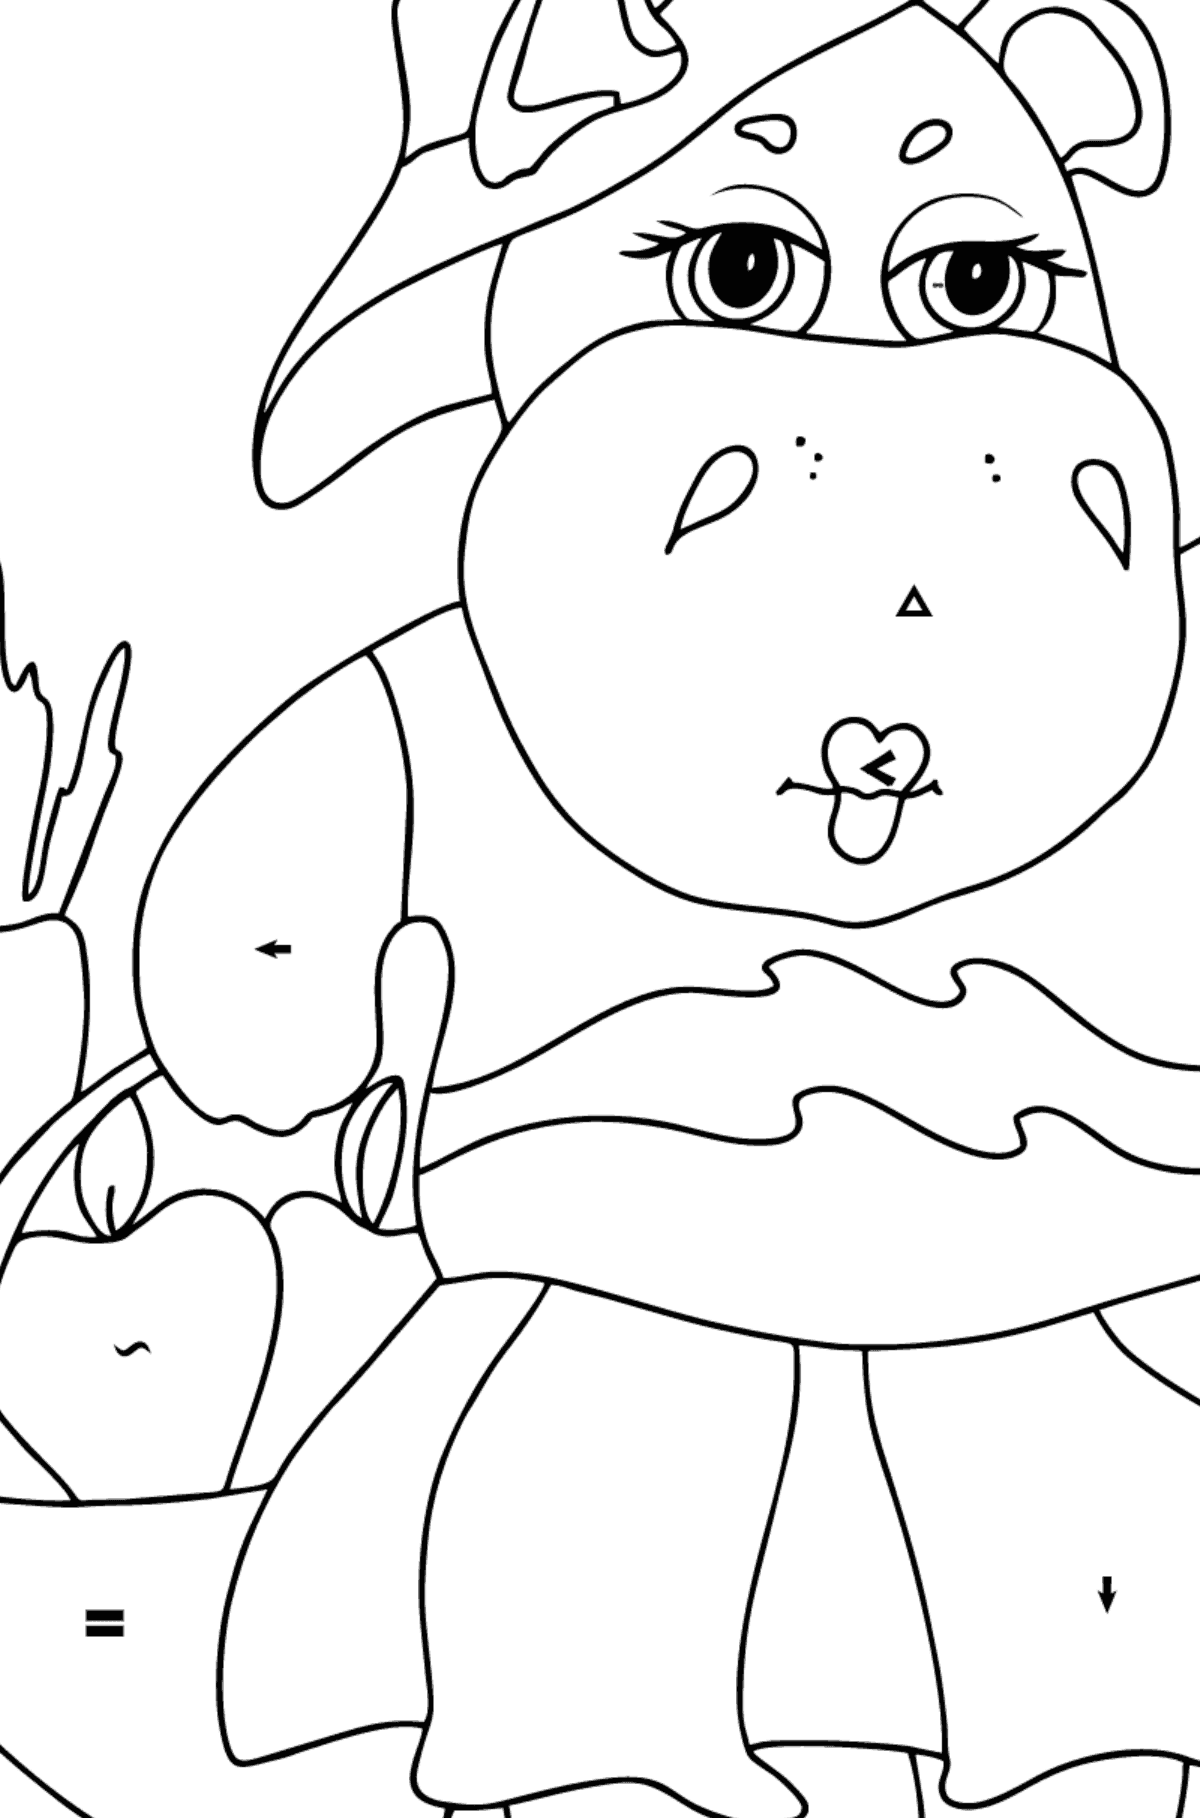 Coloring Page - A Hippo with a Basket of Carrots and Apples - Check it Out for Children  - Color by Special Symbols